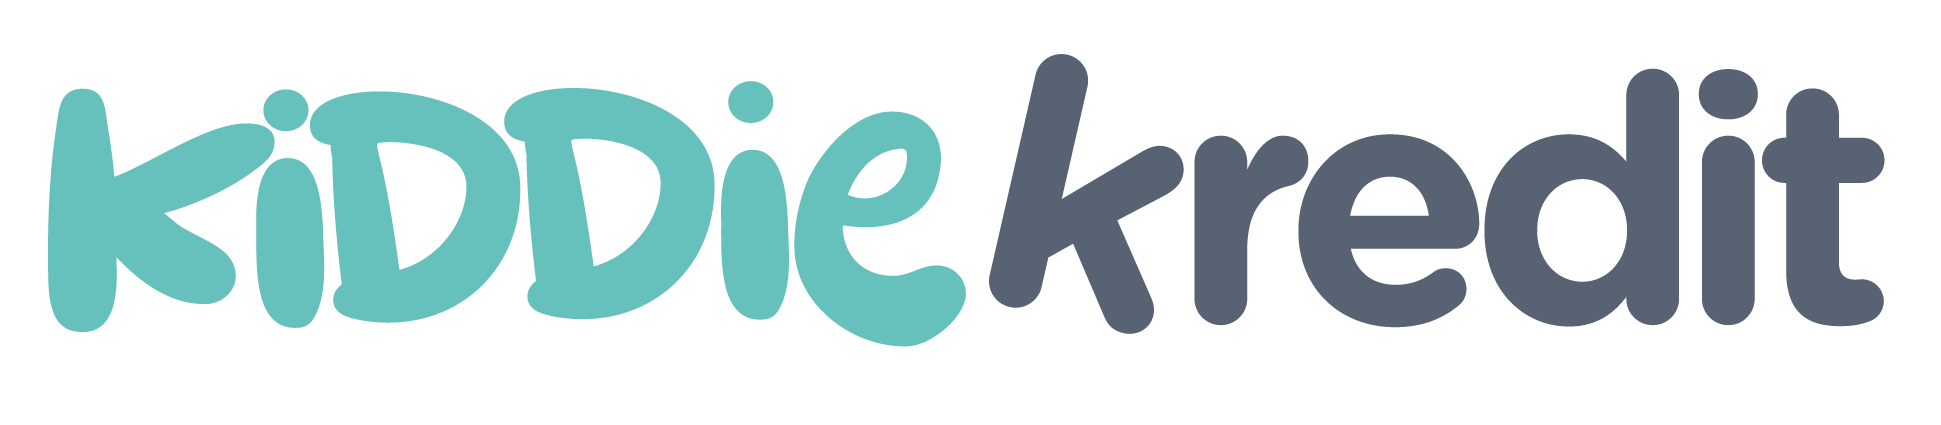 Kiddie Kredit logo in green and gray